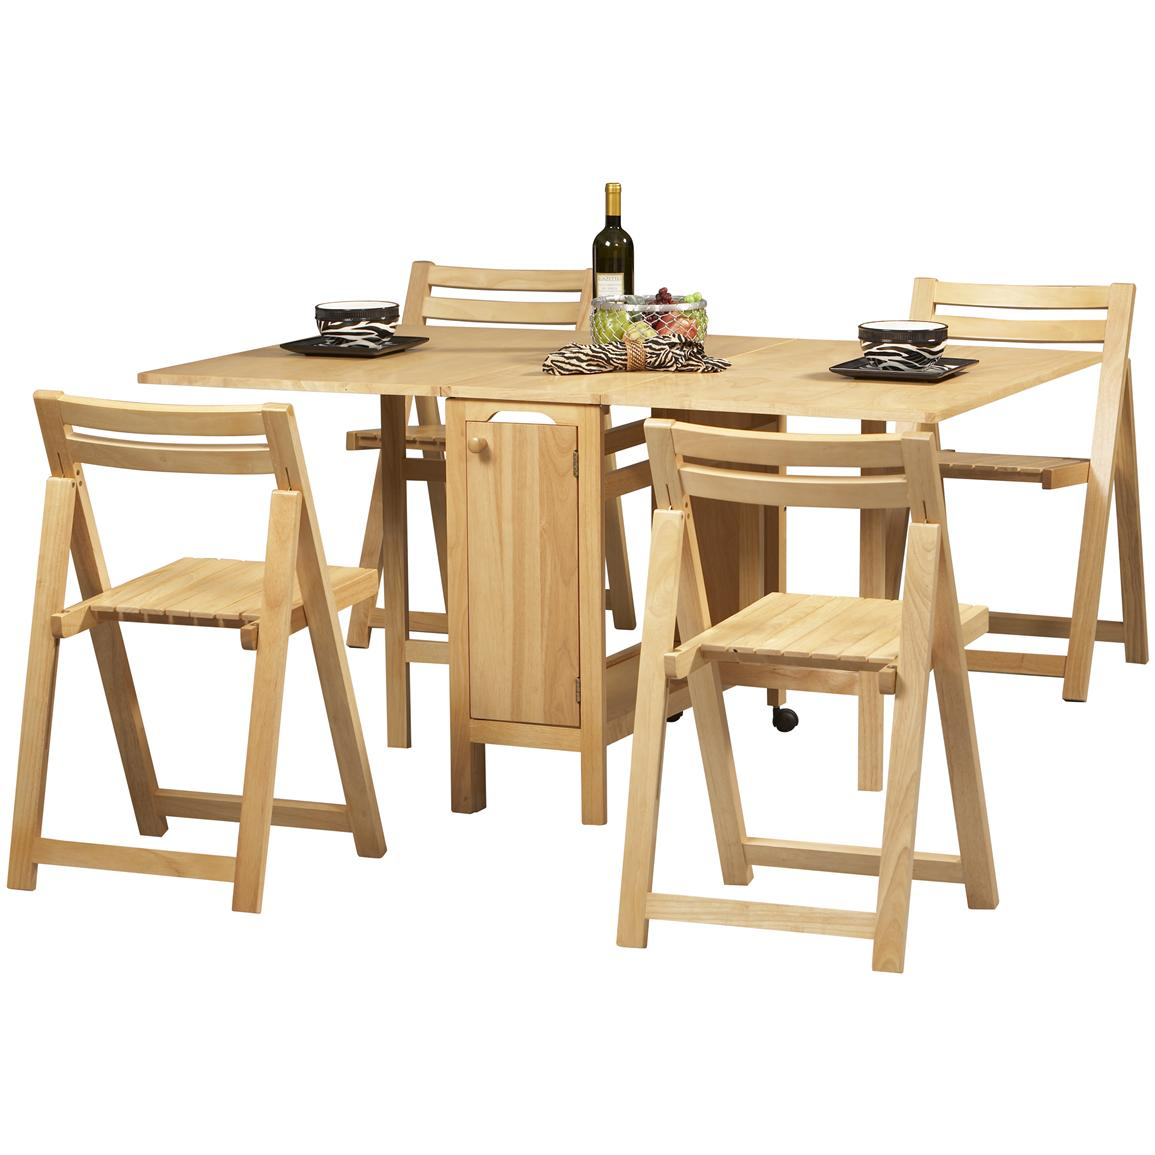 space saver table set 182576 kitchen dining at sportsman 39 s g